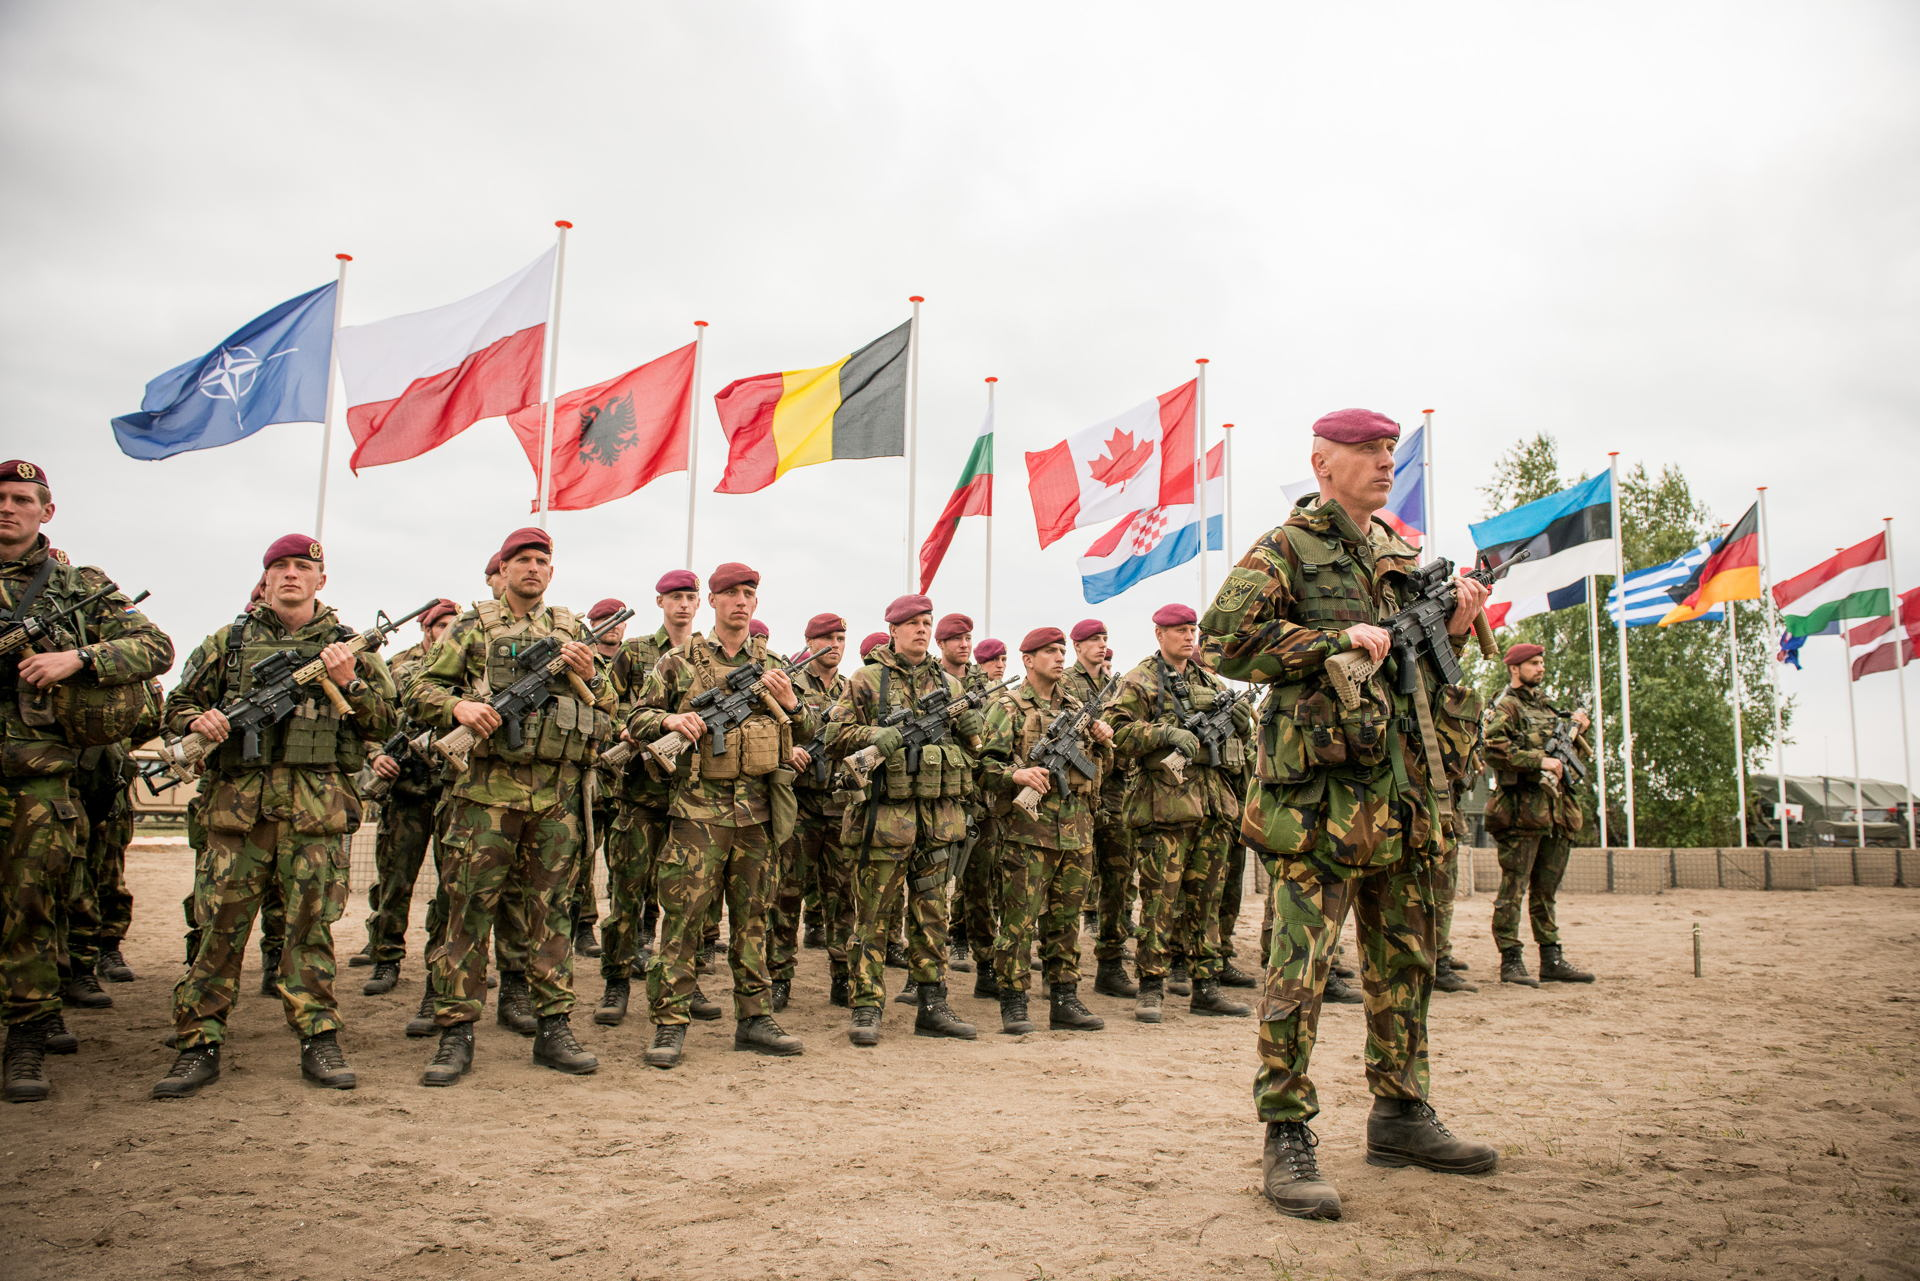 Arming for Deterrence: How Poland and NATO Should Counter a Resurgent Russia